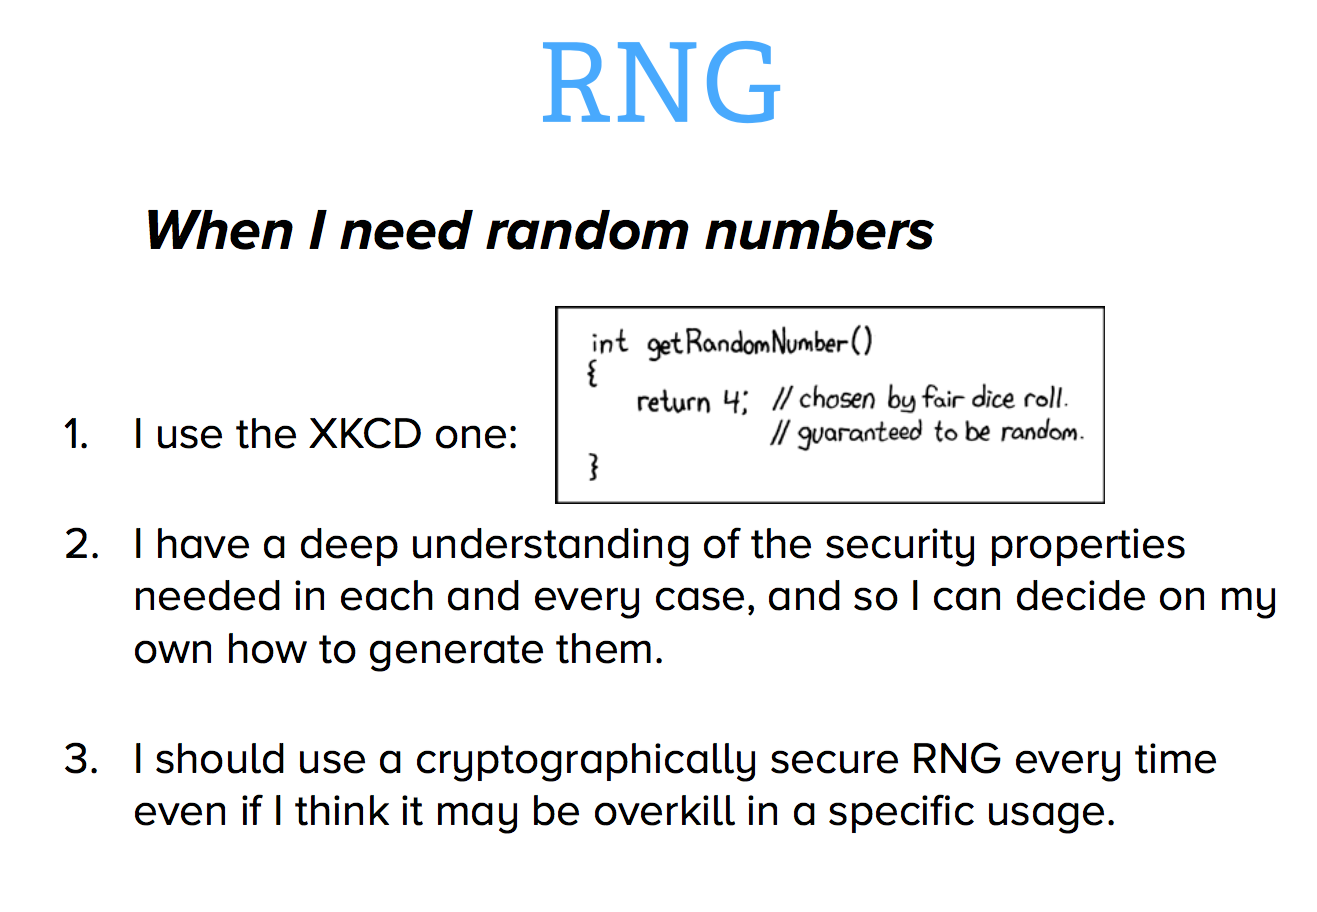 What RNG should our developers use?